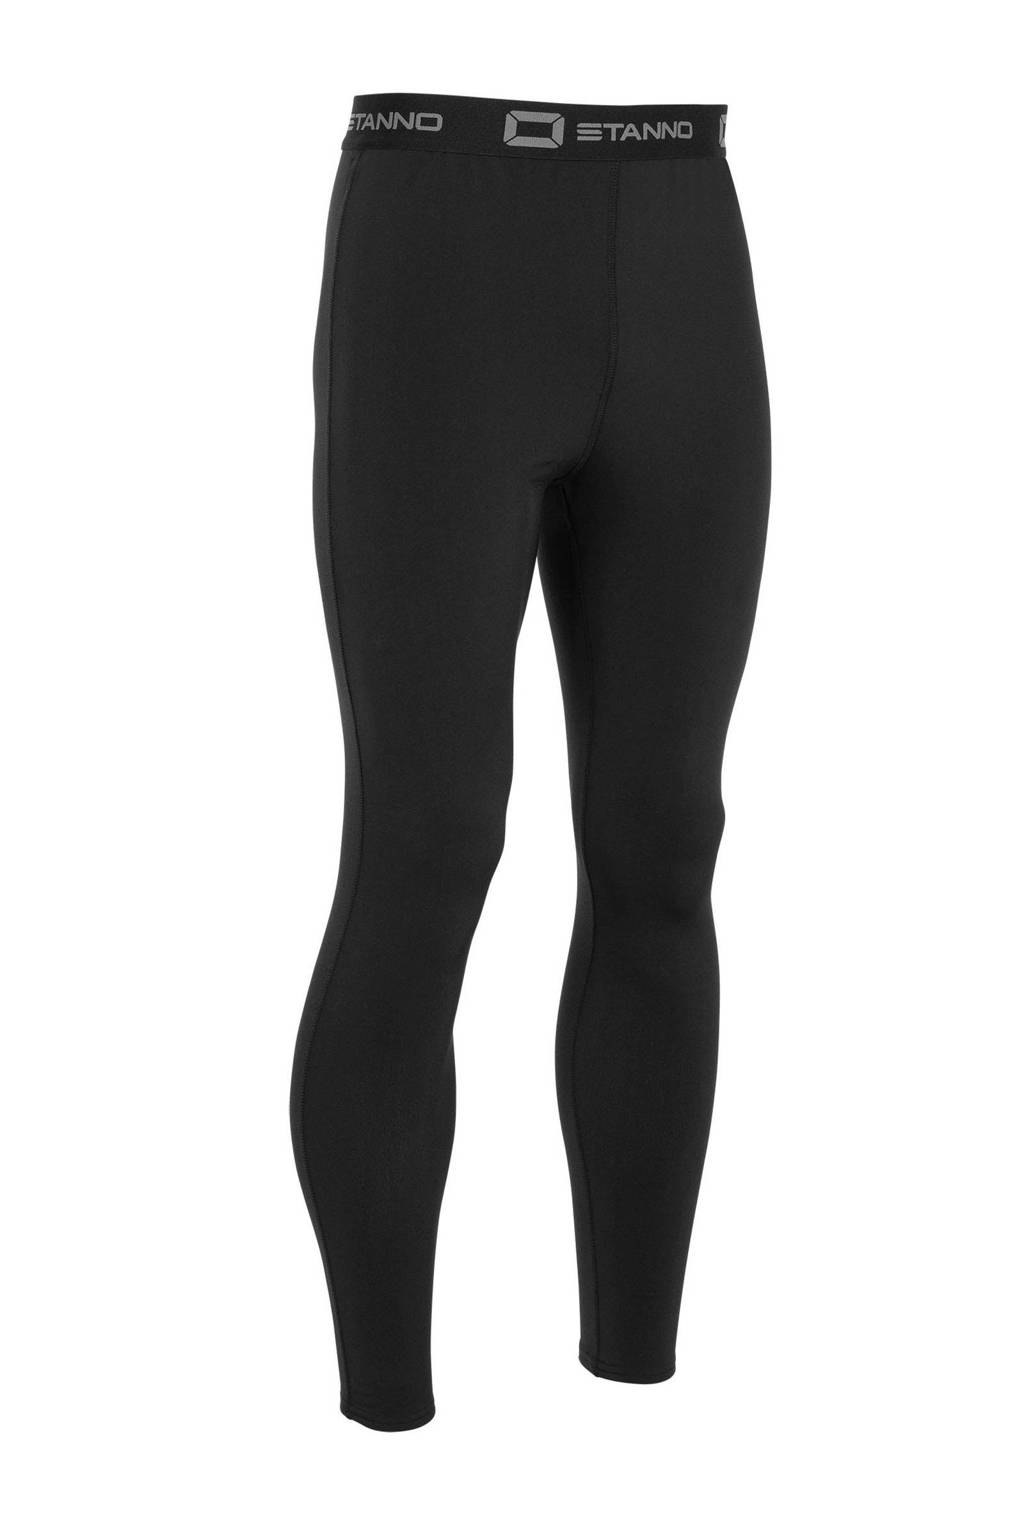 Stanno Junior  thermo sportbroek zwart, Zwart